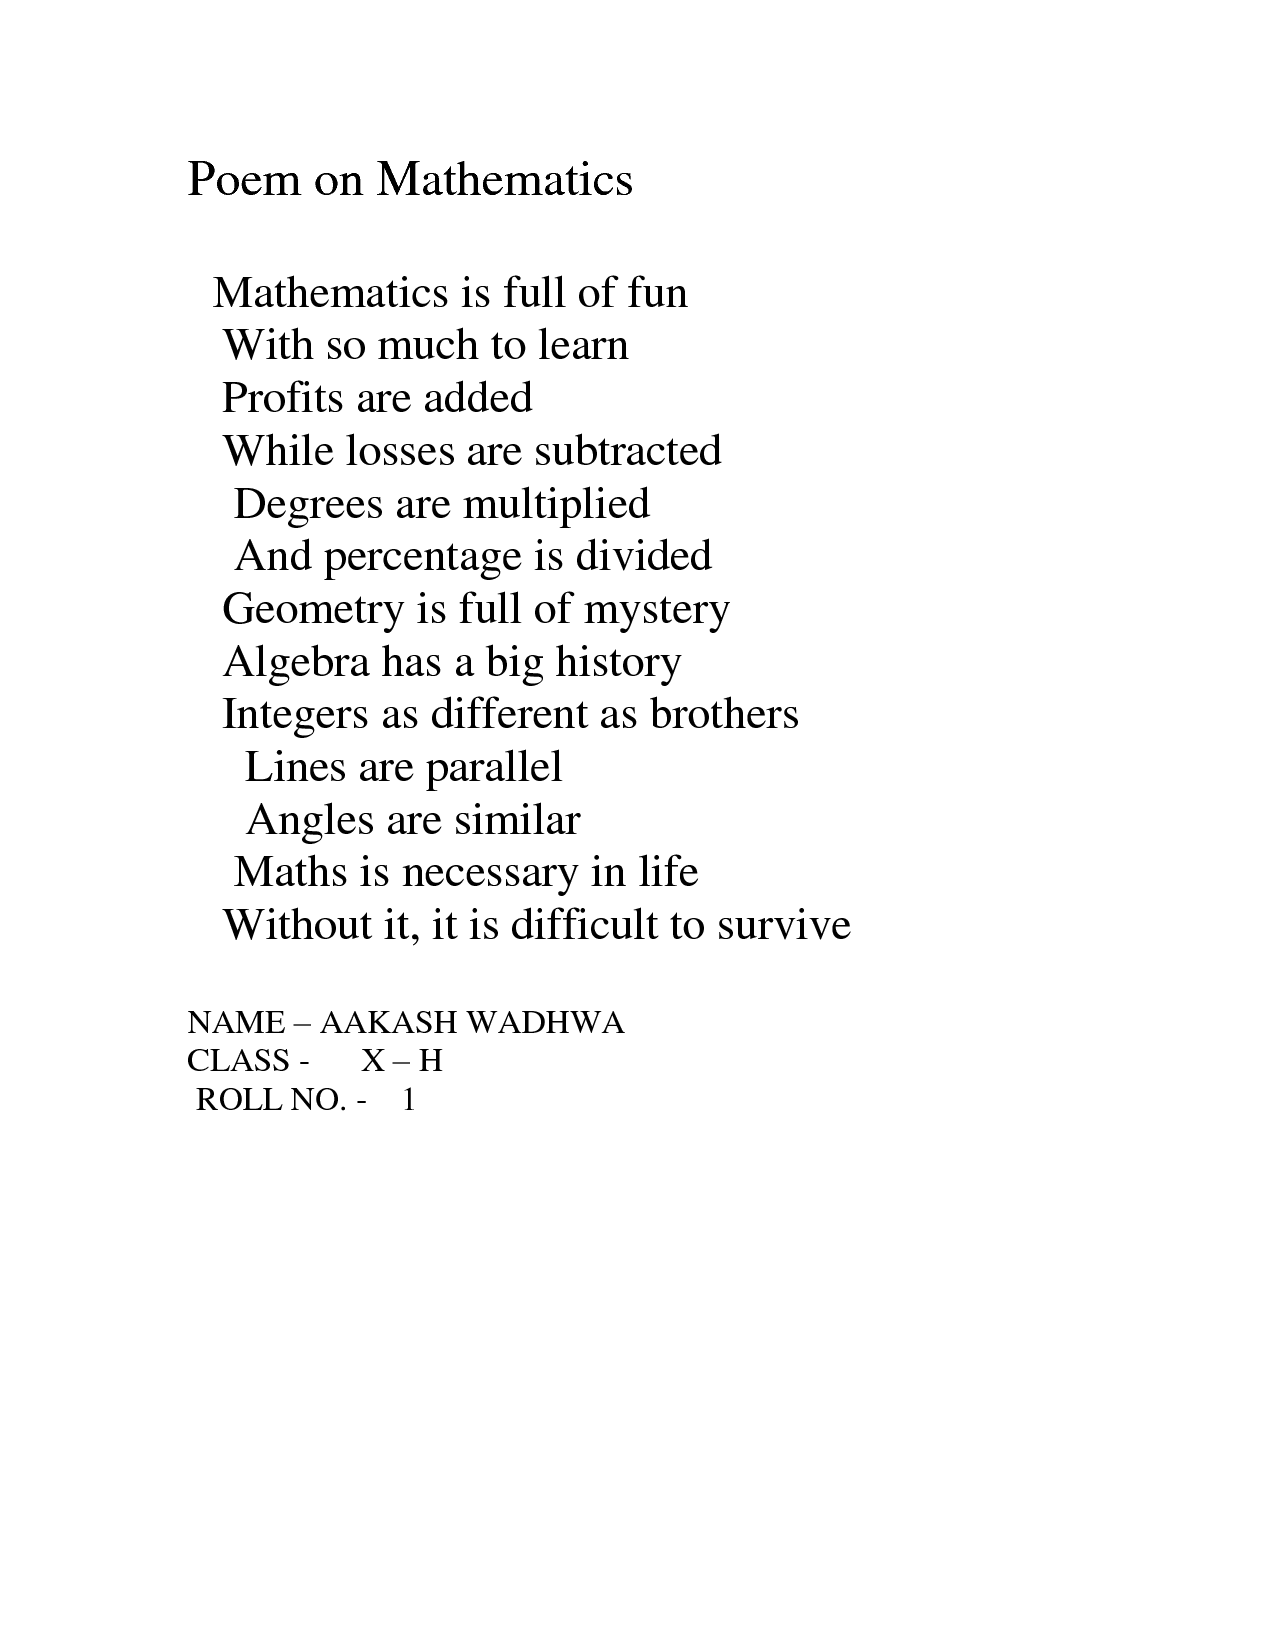 Math Poems With Math Terms Poems about math algebra | Math Poems ...